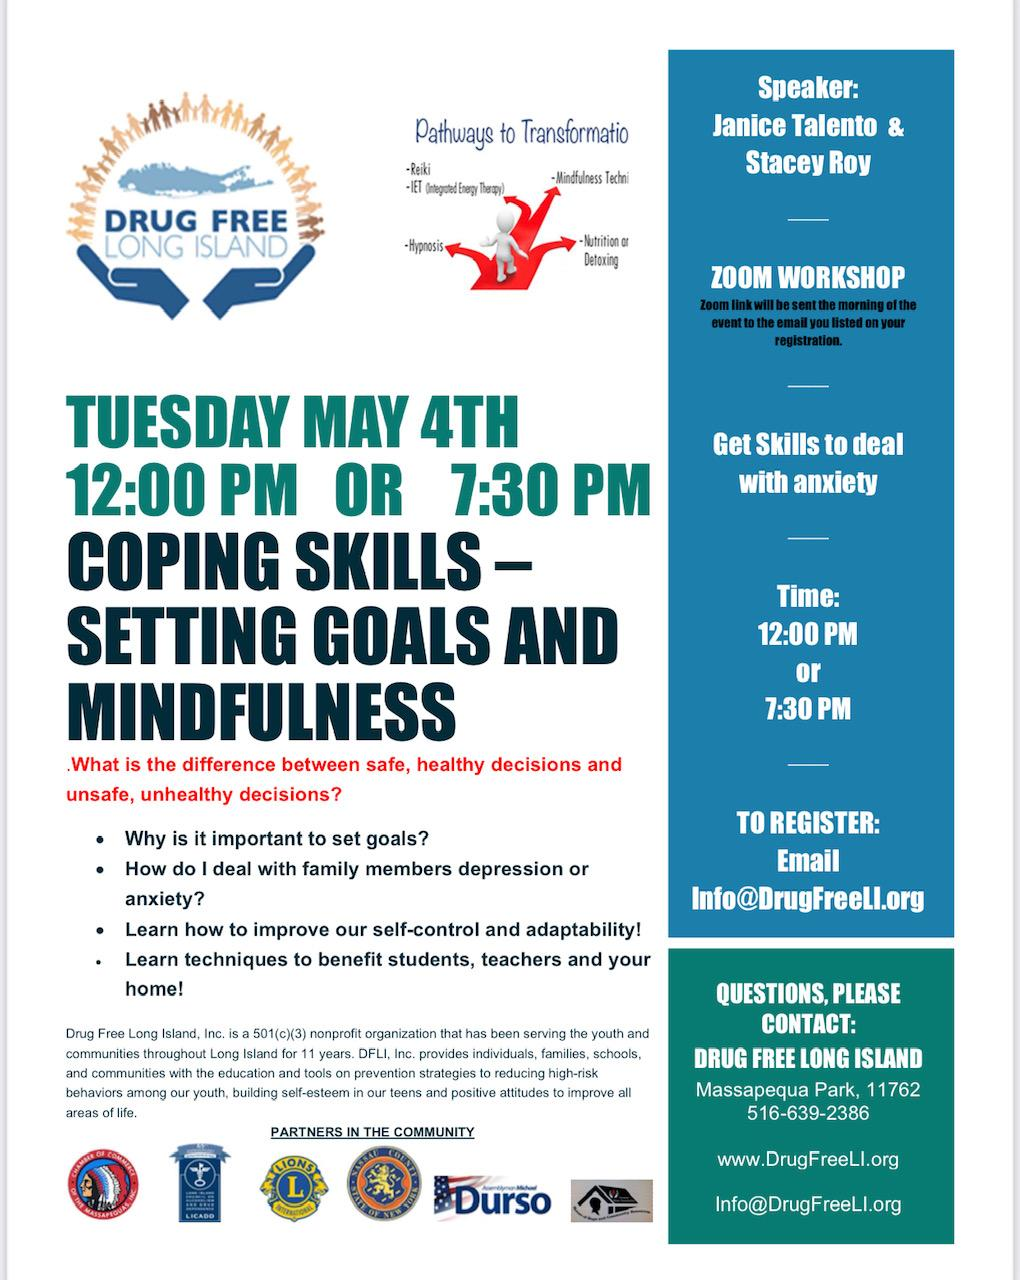 Coping Skills Workshop - Setting Goals and Mindfulness 12:00 PM Session